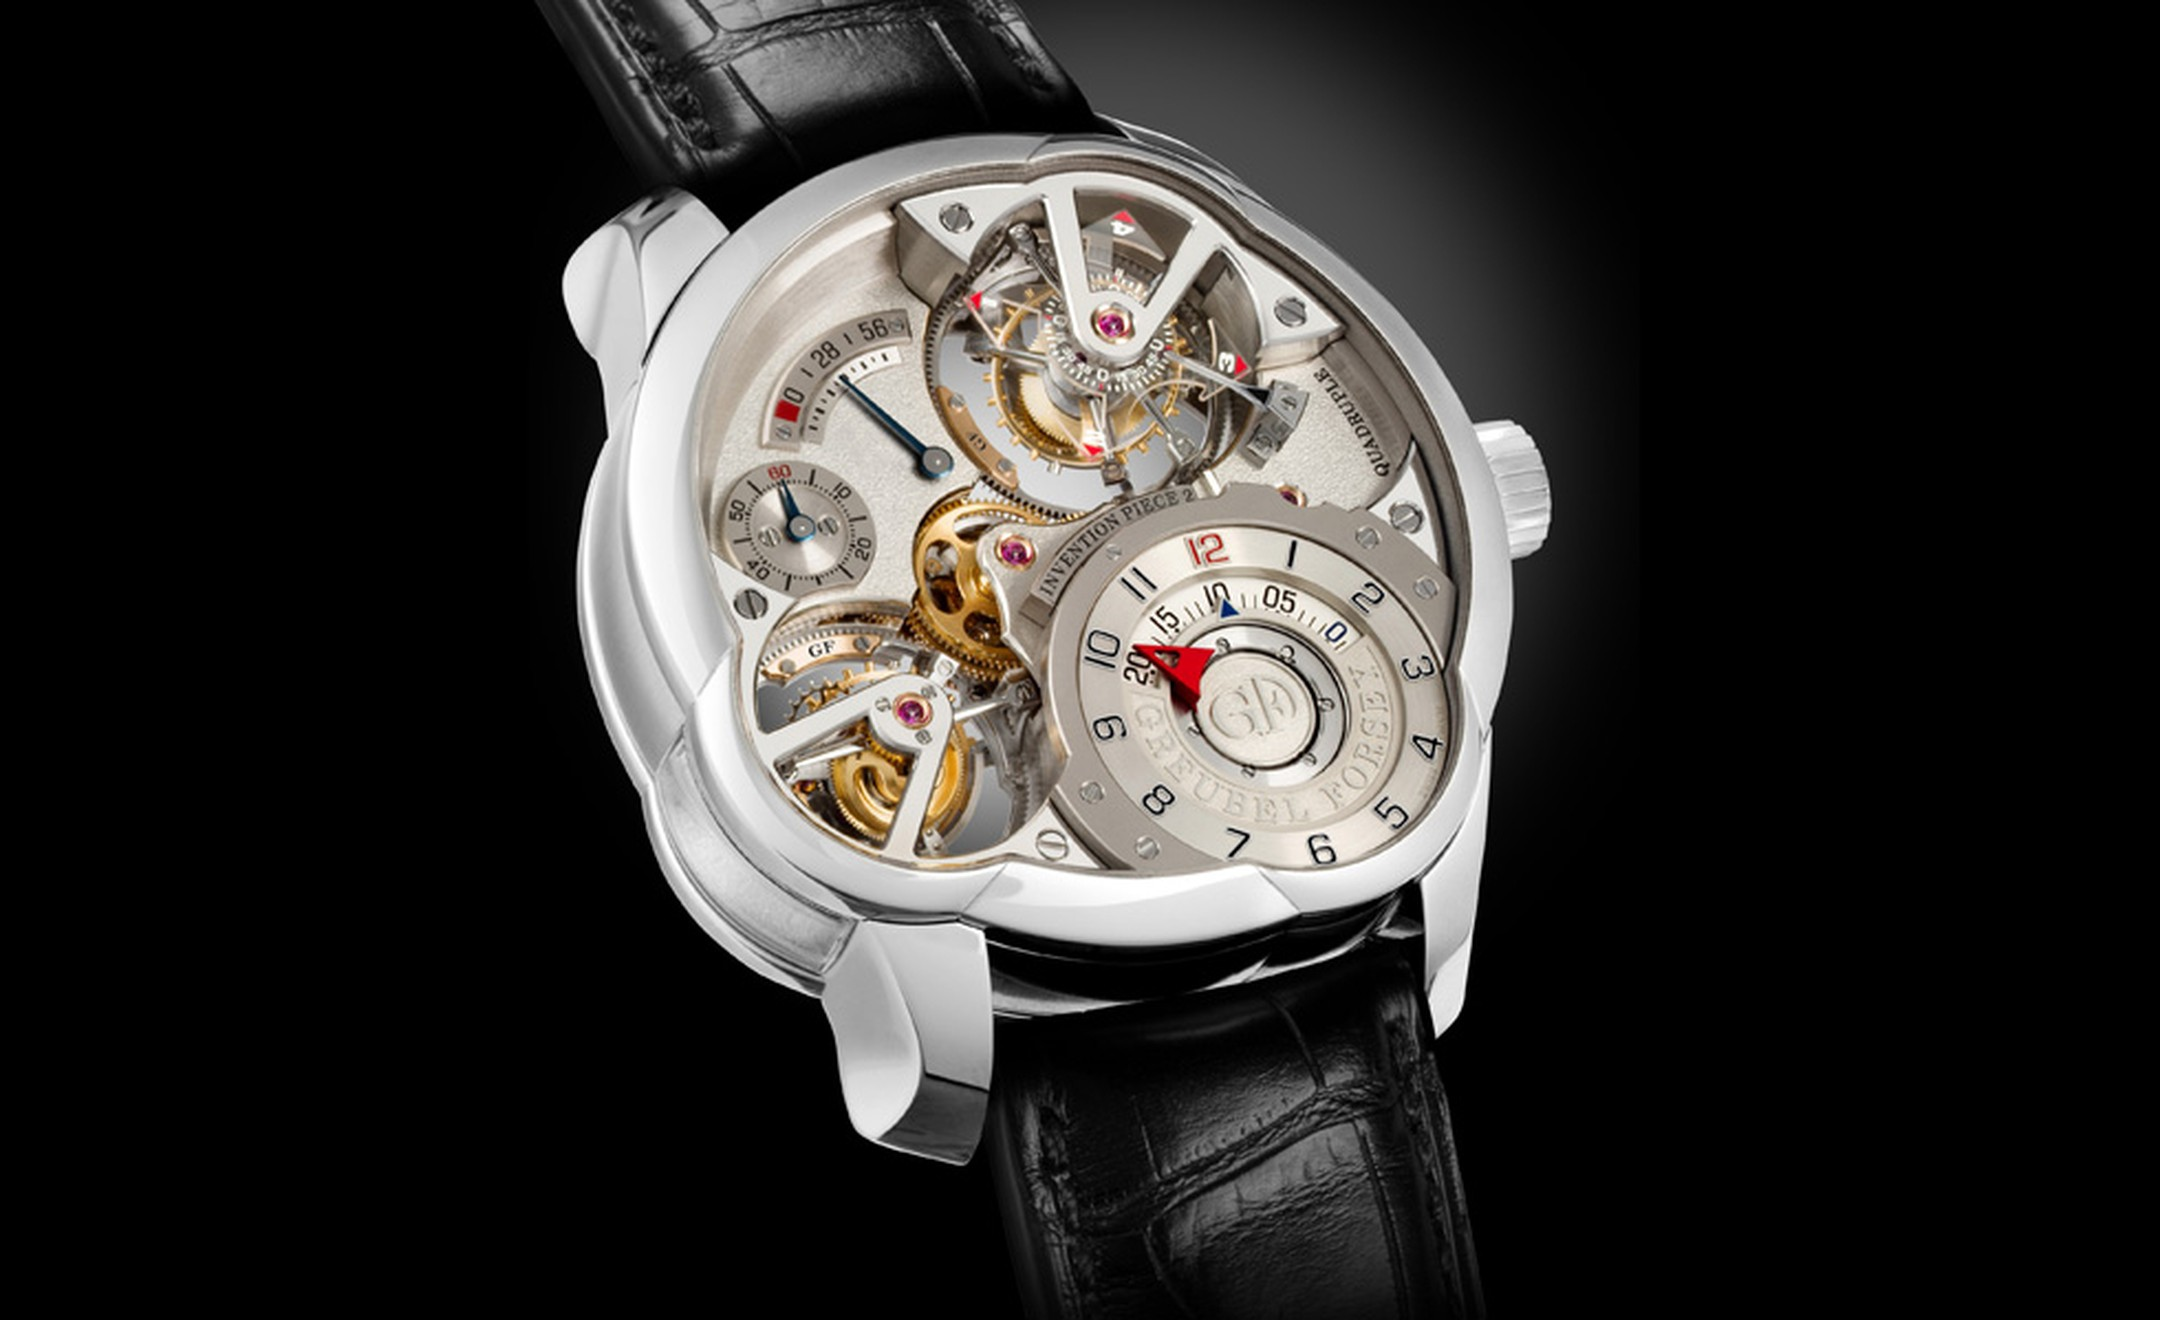 Greubel Forsey Invention Piece 2 with quadruple tourbillon consisting of two double tourbillons and limited to just 11 pieces in platinum and 11 in red gold.